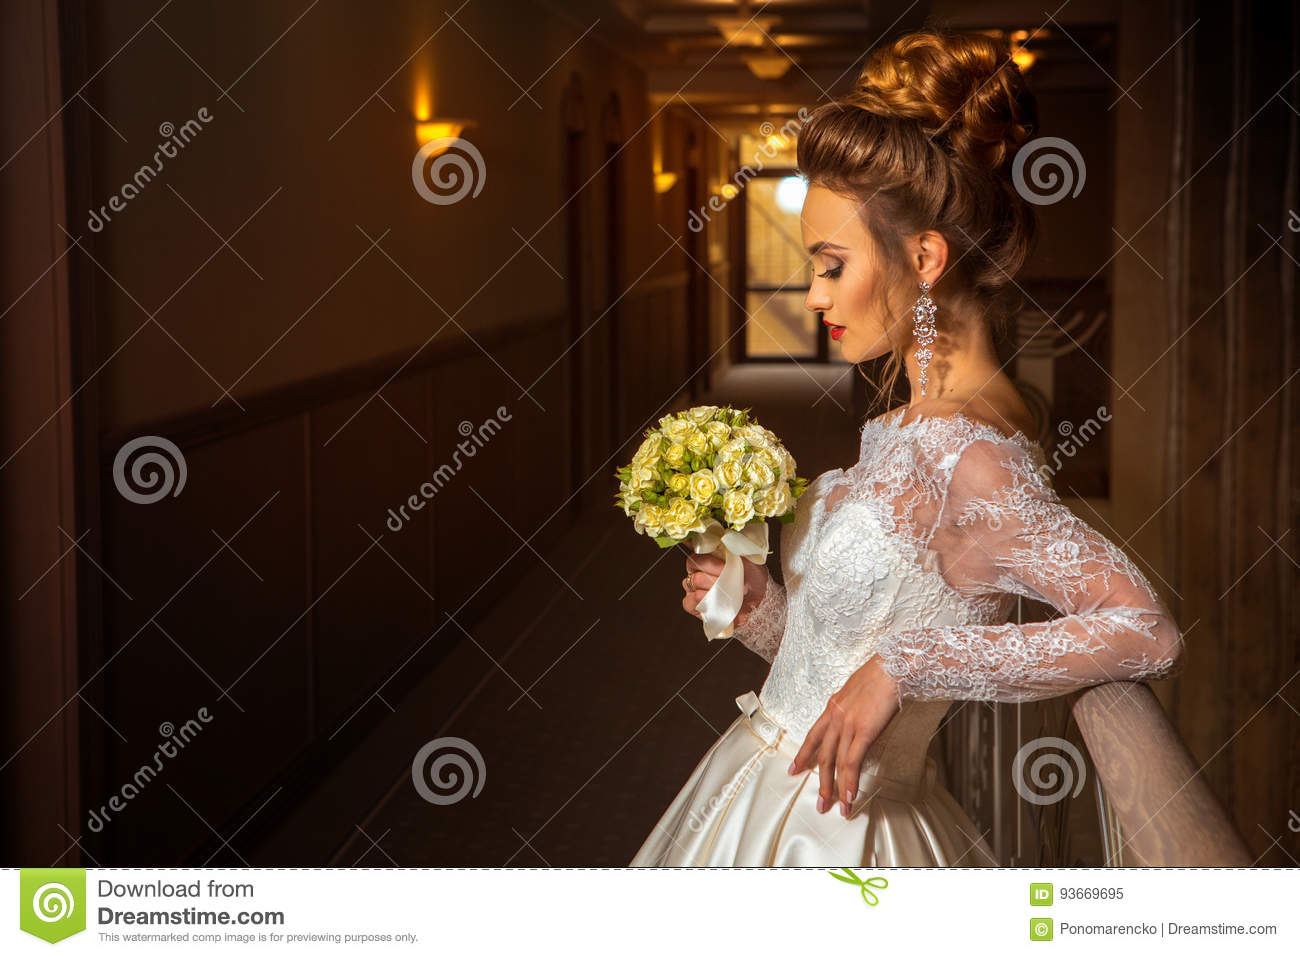 Blonde beautiful bride in fashionable wedding dress with bouquet of roses